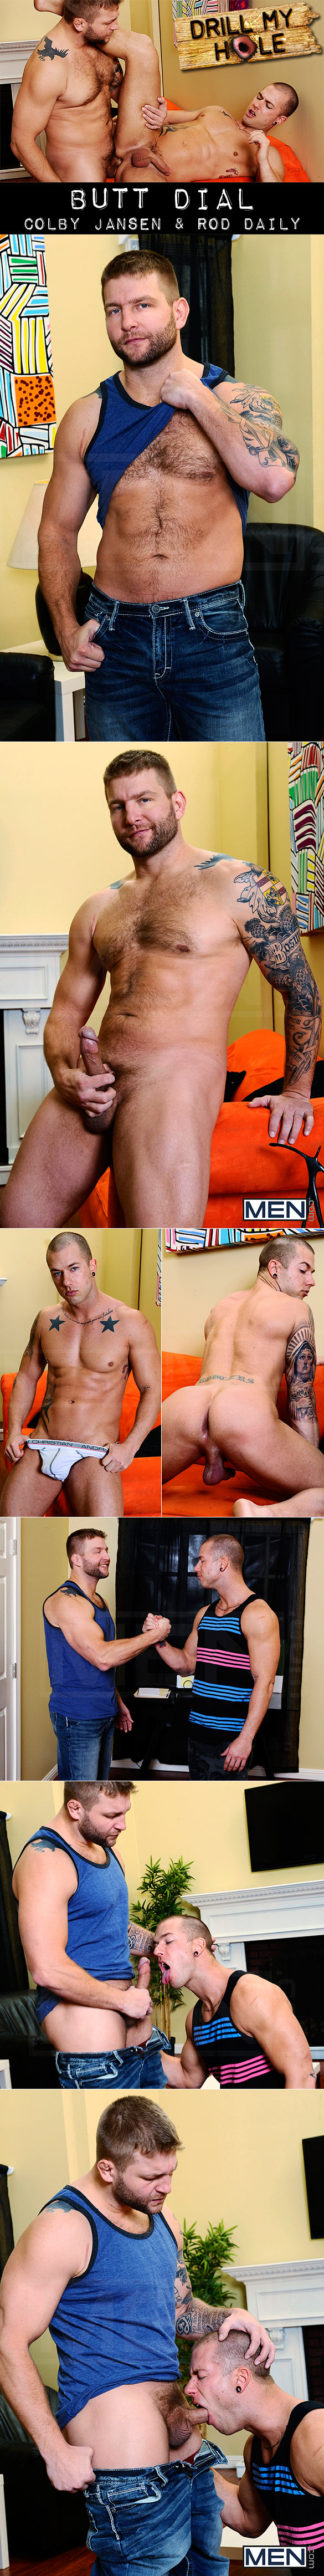 "Men.com: Colby Jansen pounds Rod Daily in ""Butt Dial"""